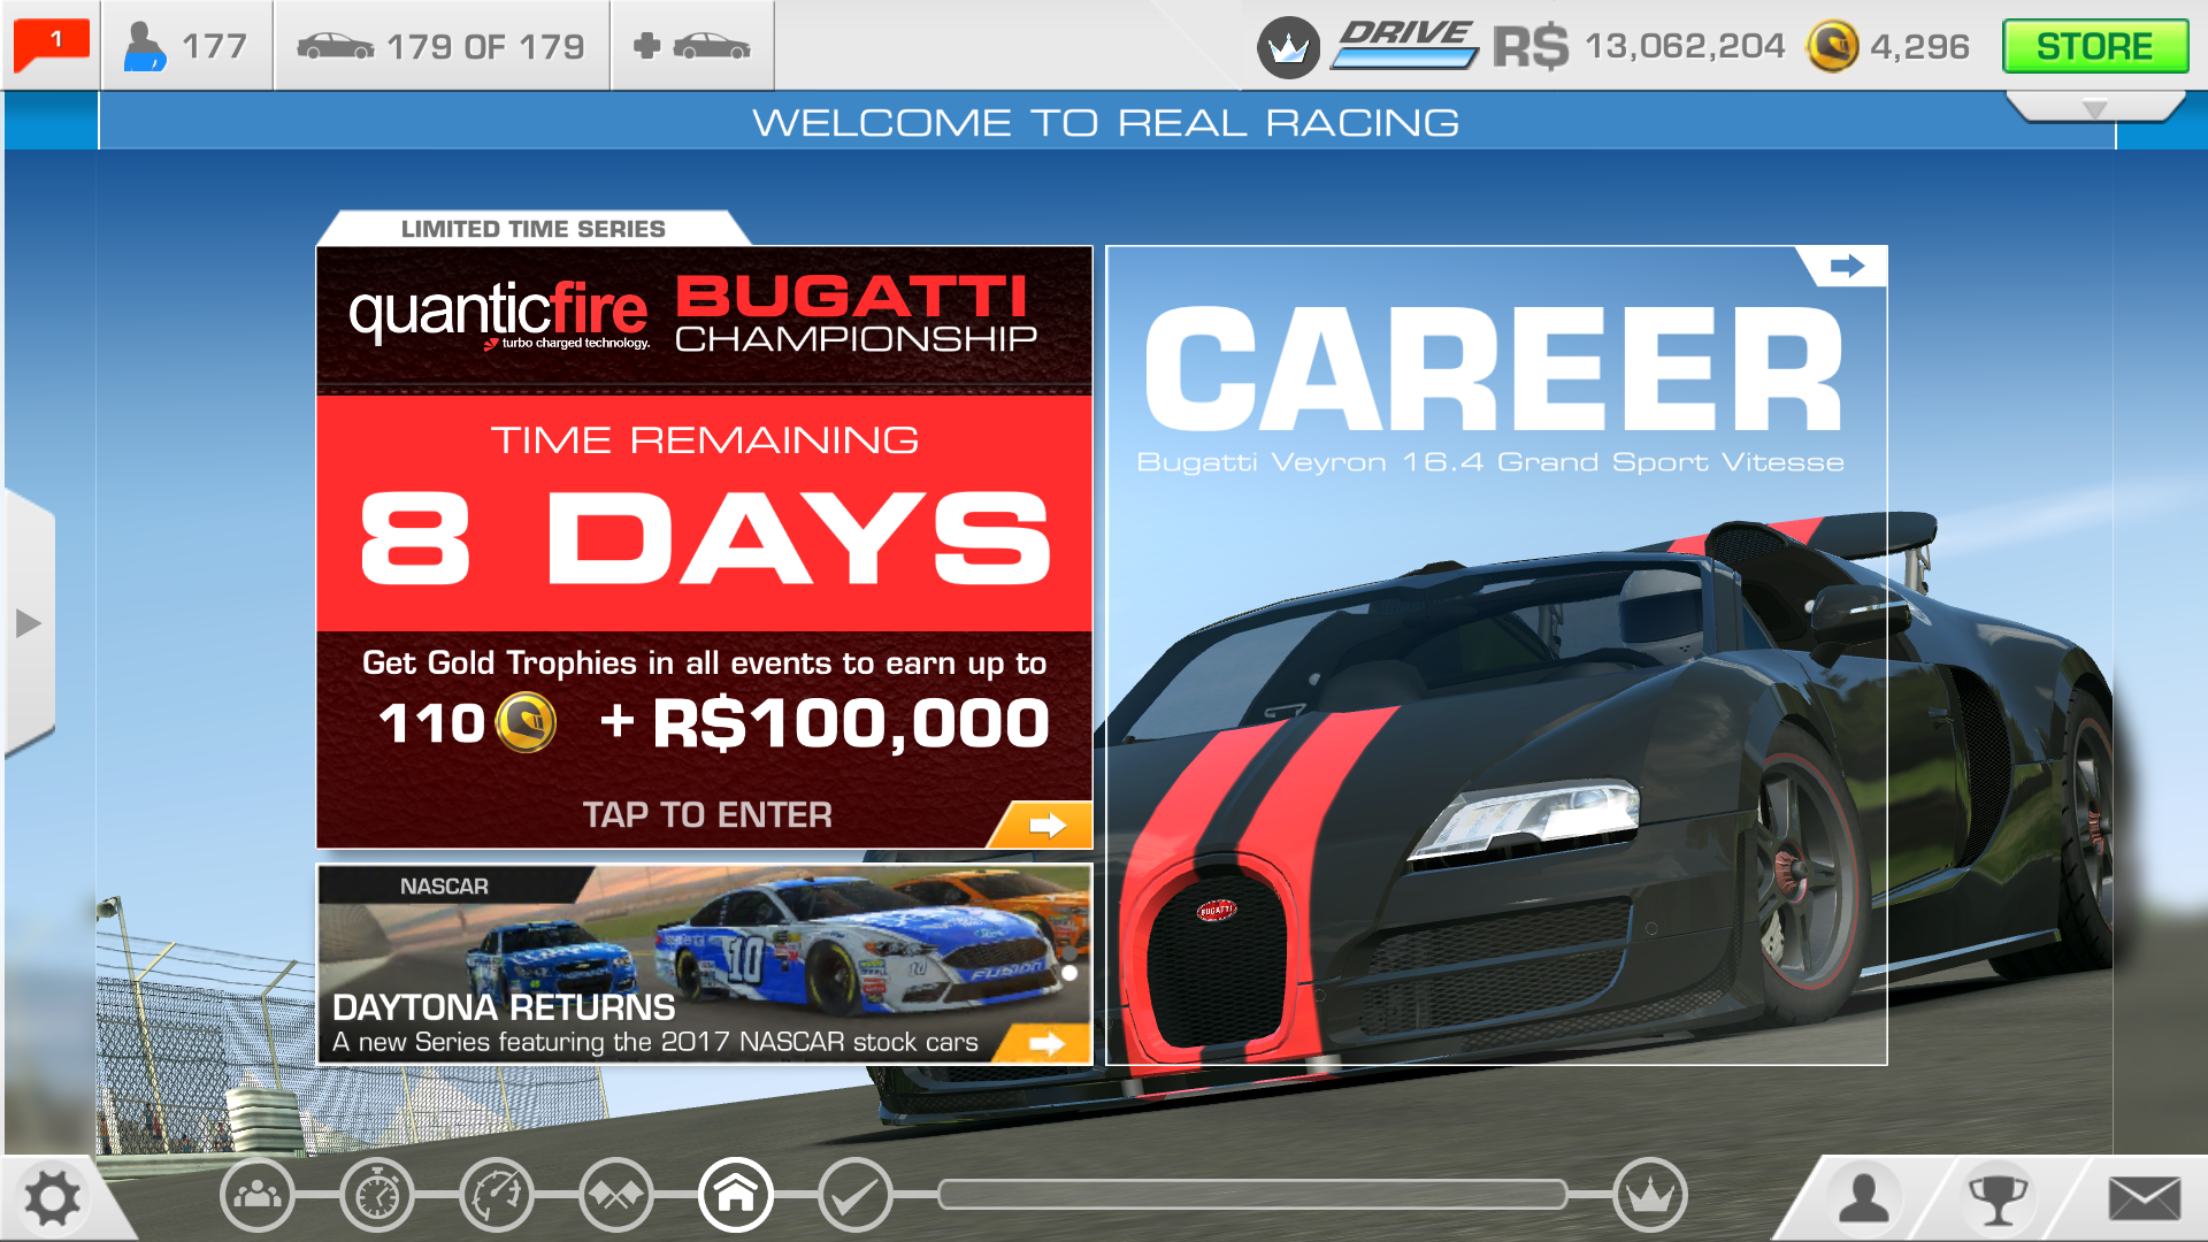 latest?cb=20170409085205 Amazing Price Of Bugatti Veyron 16.4 Grand Sport Vitesse In Real Racing 3 Cars Trend